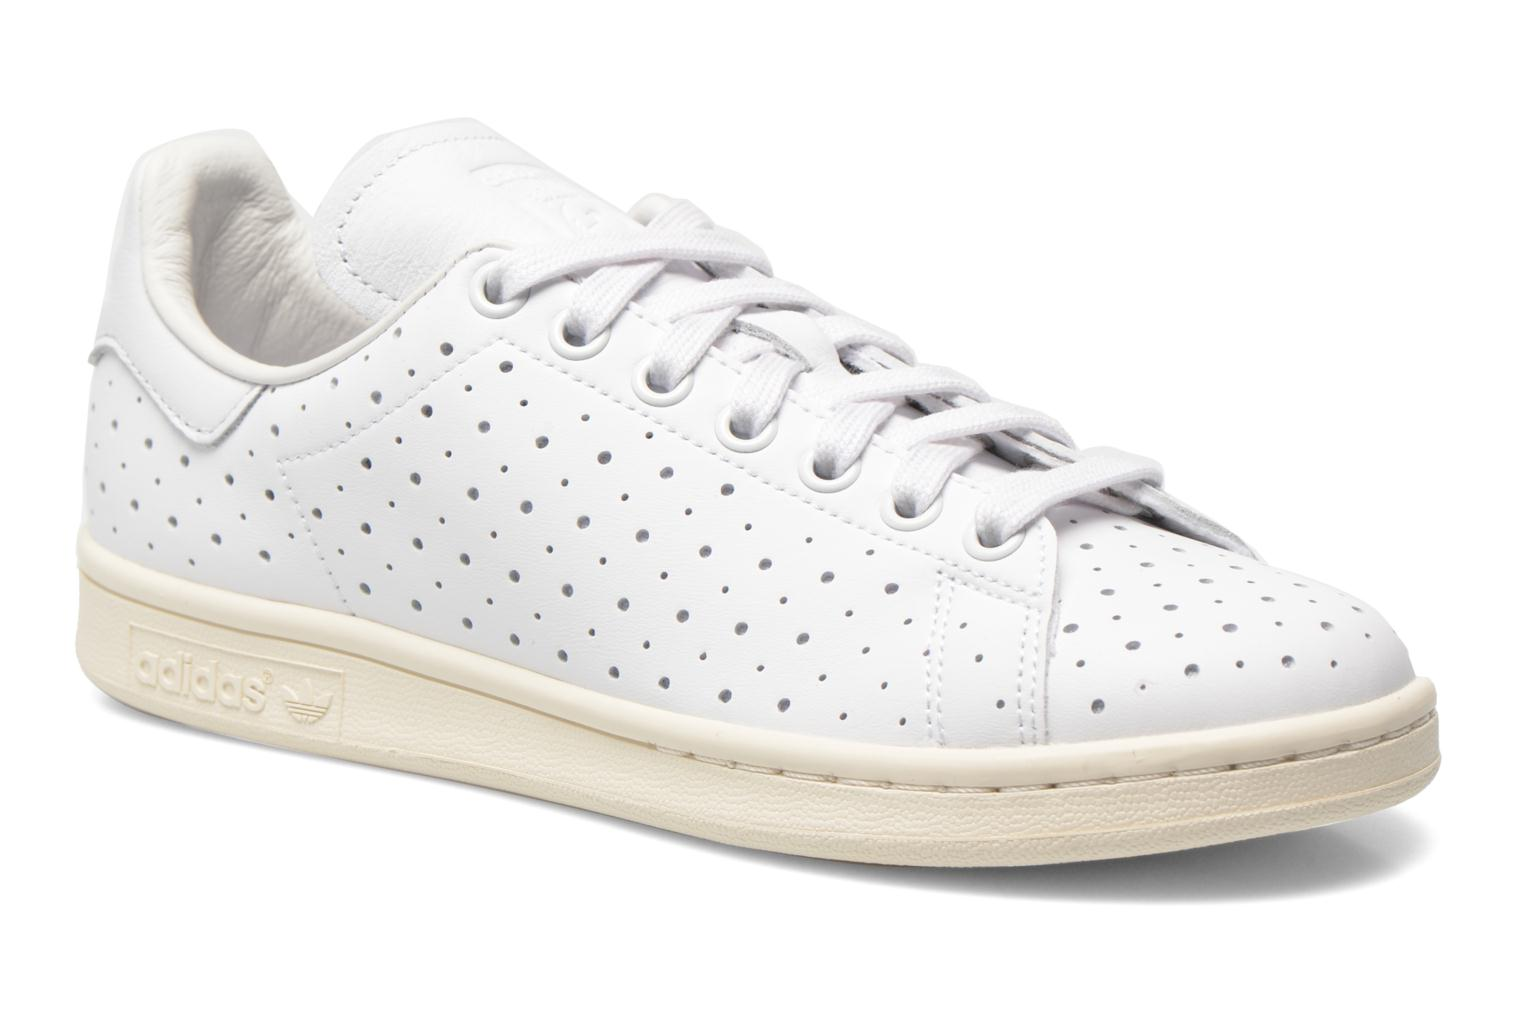 Stan Smith W Ftwbla/Ftwbla/Blacra